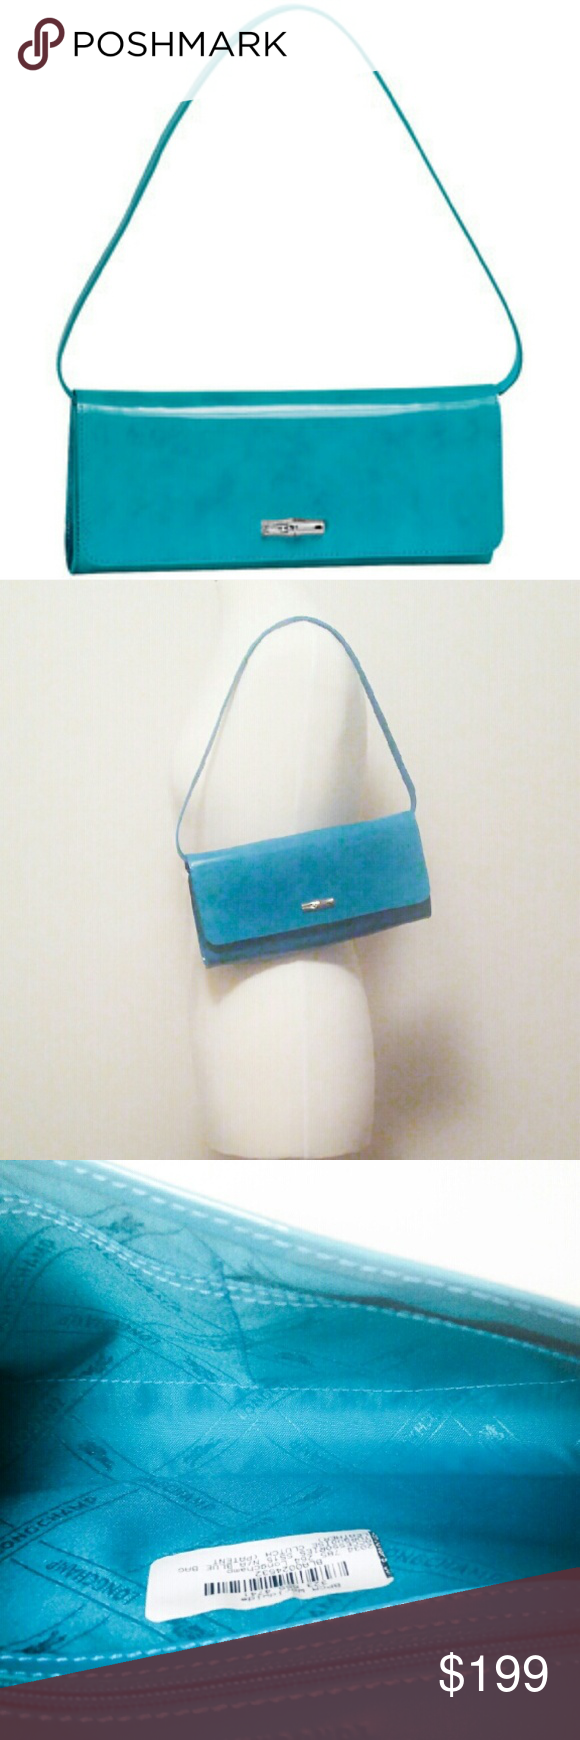 1d76d7edbed Longchamp Roseau Turquoise Aquamarine Bag New with tags! Rare! This is the